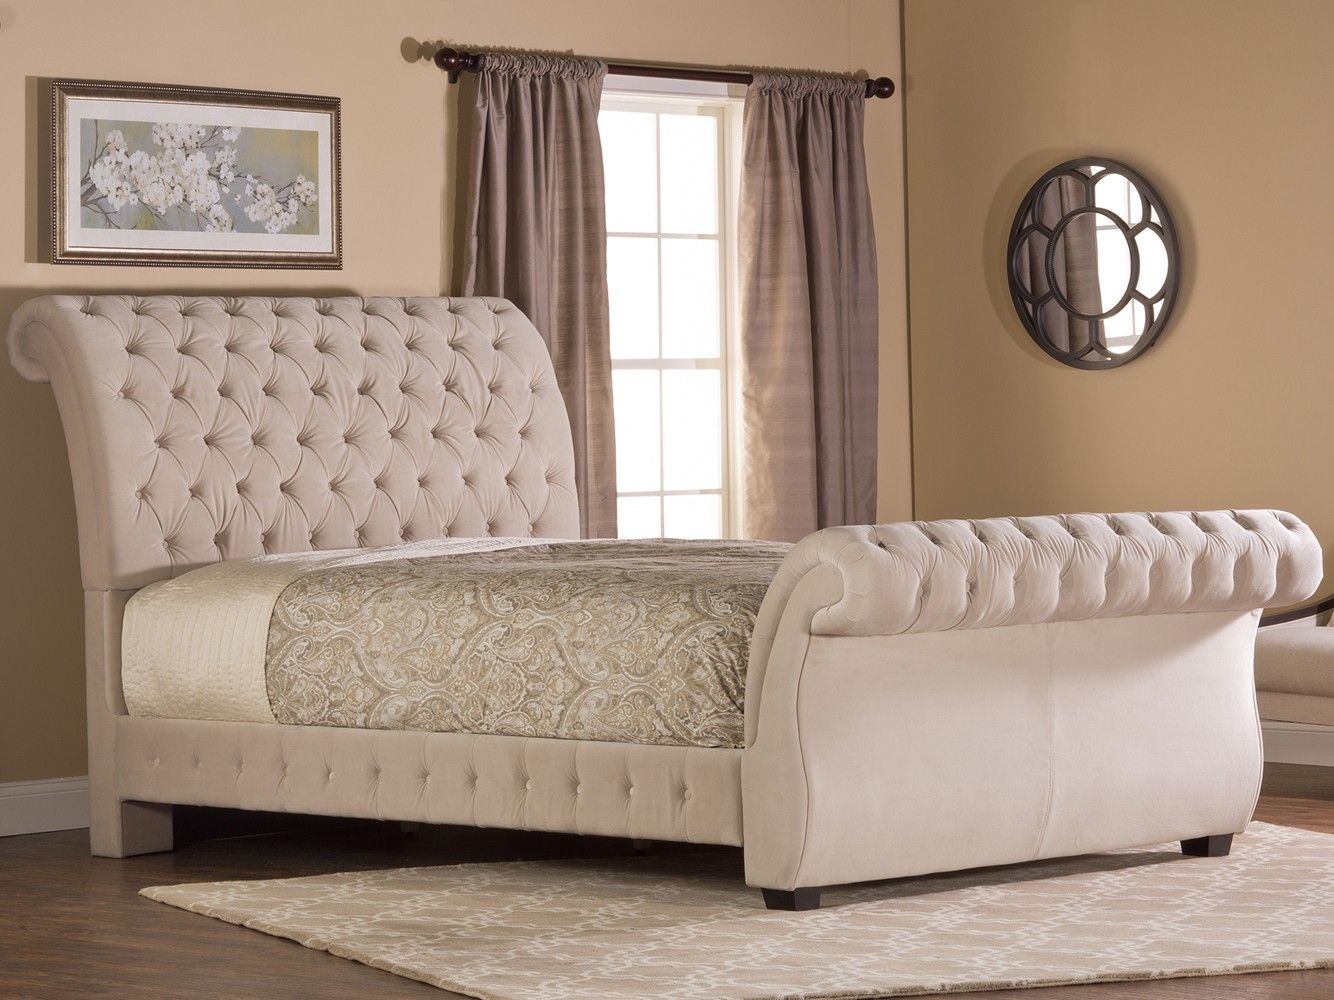 Wayfair Tufted Headboard Bedding Bedroom Transitional With: Bombay Fabric Upholstered Bed In Buckwheat By Hillsdale